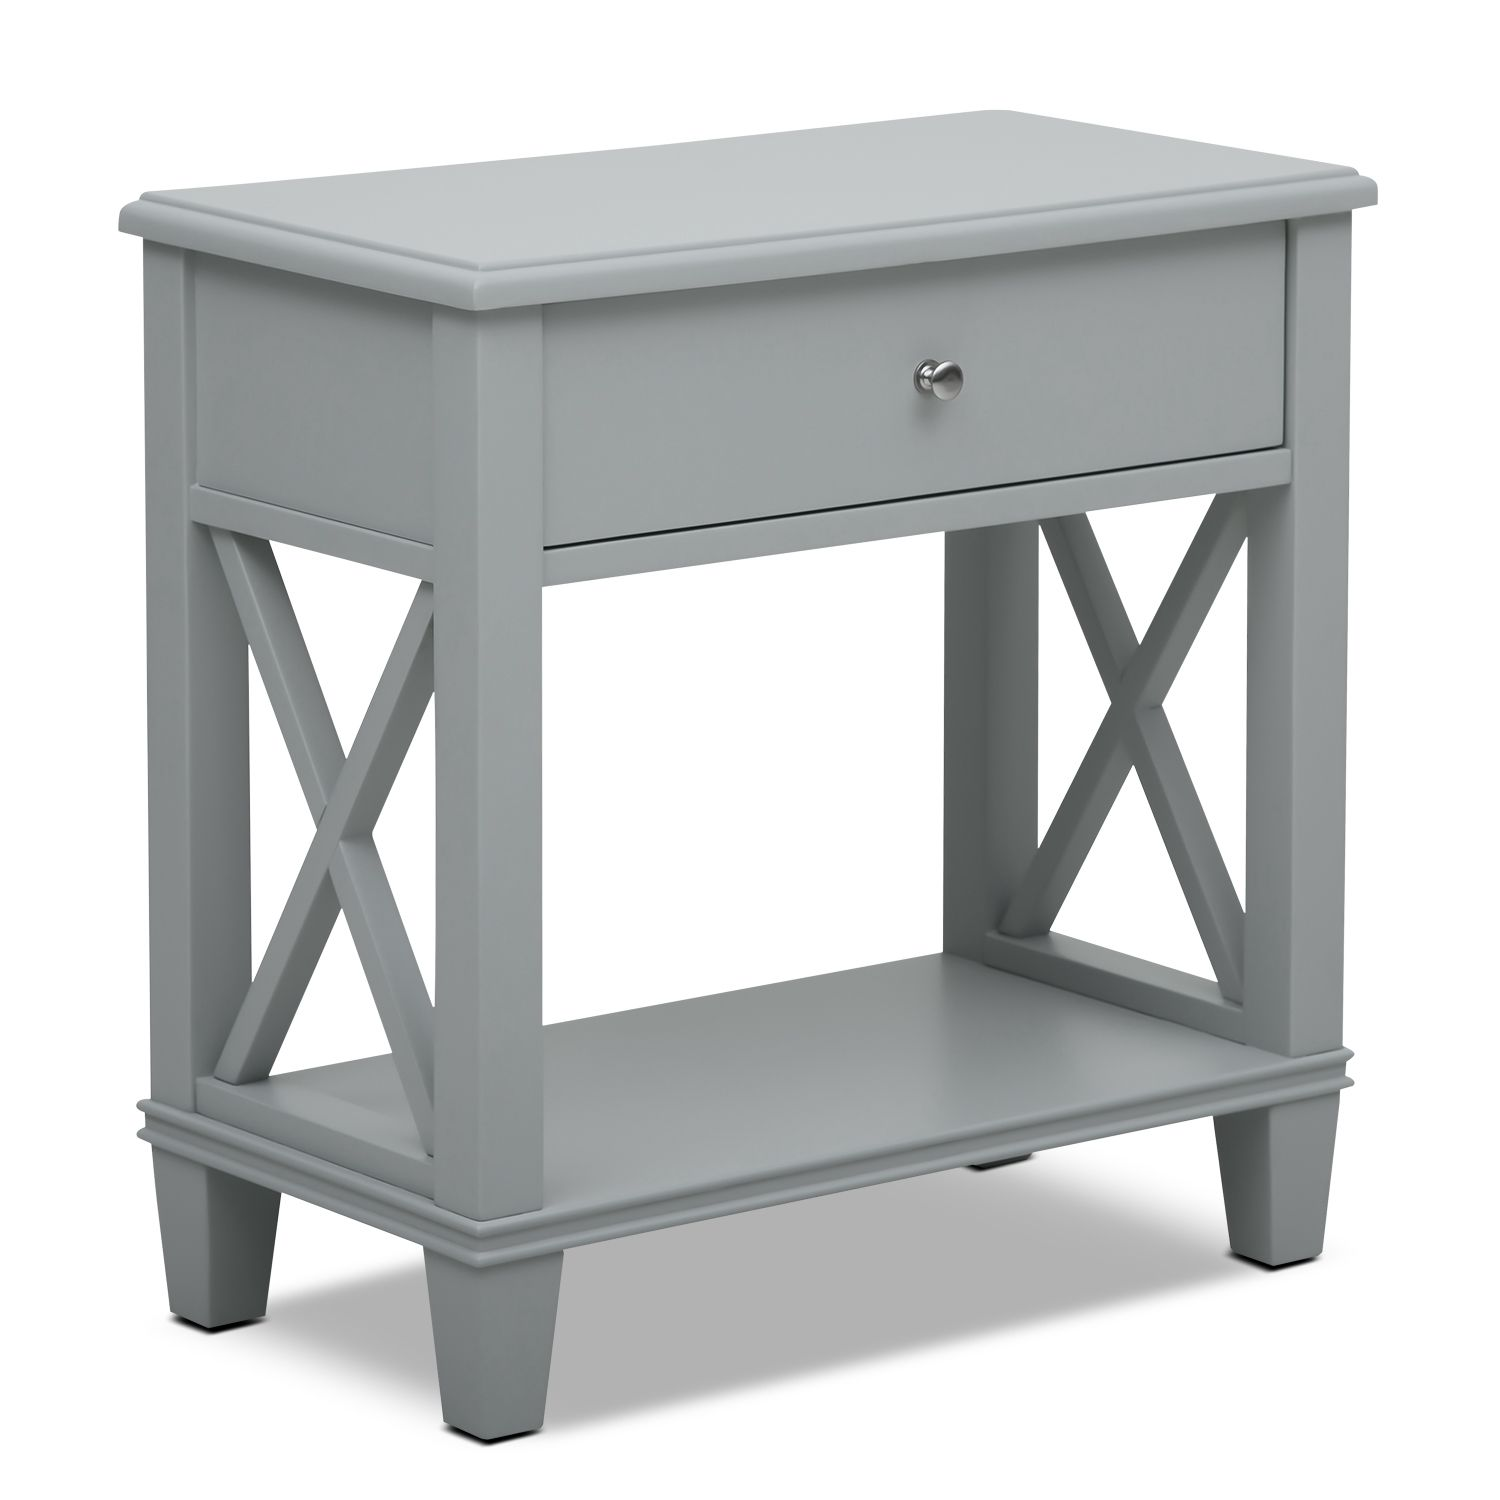 accent and occasional furniture liat table gray boss white with storage computer slim unit ikea glass center concrete wood top seaside themed lamp shades small round dining